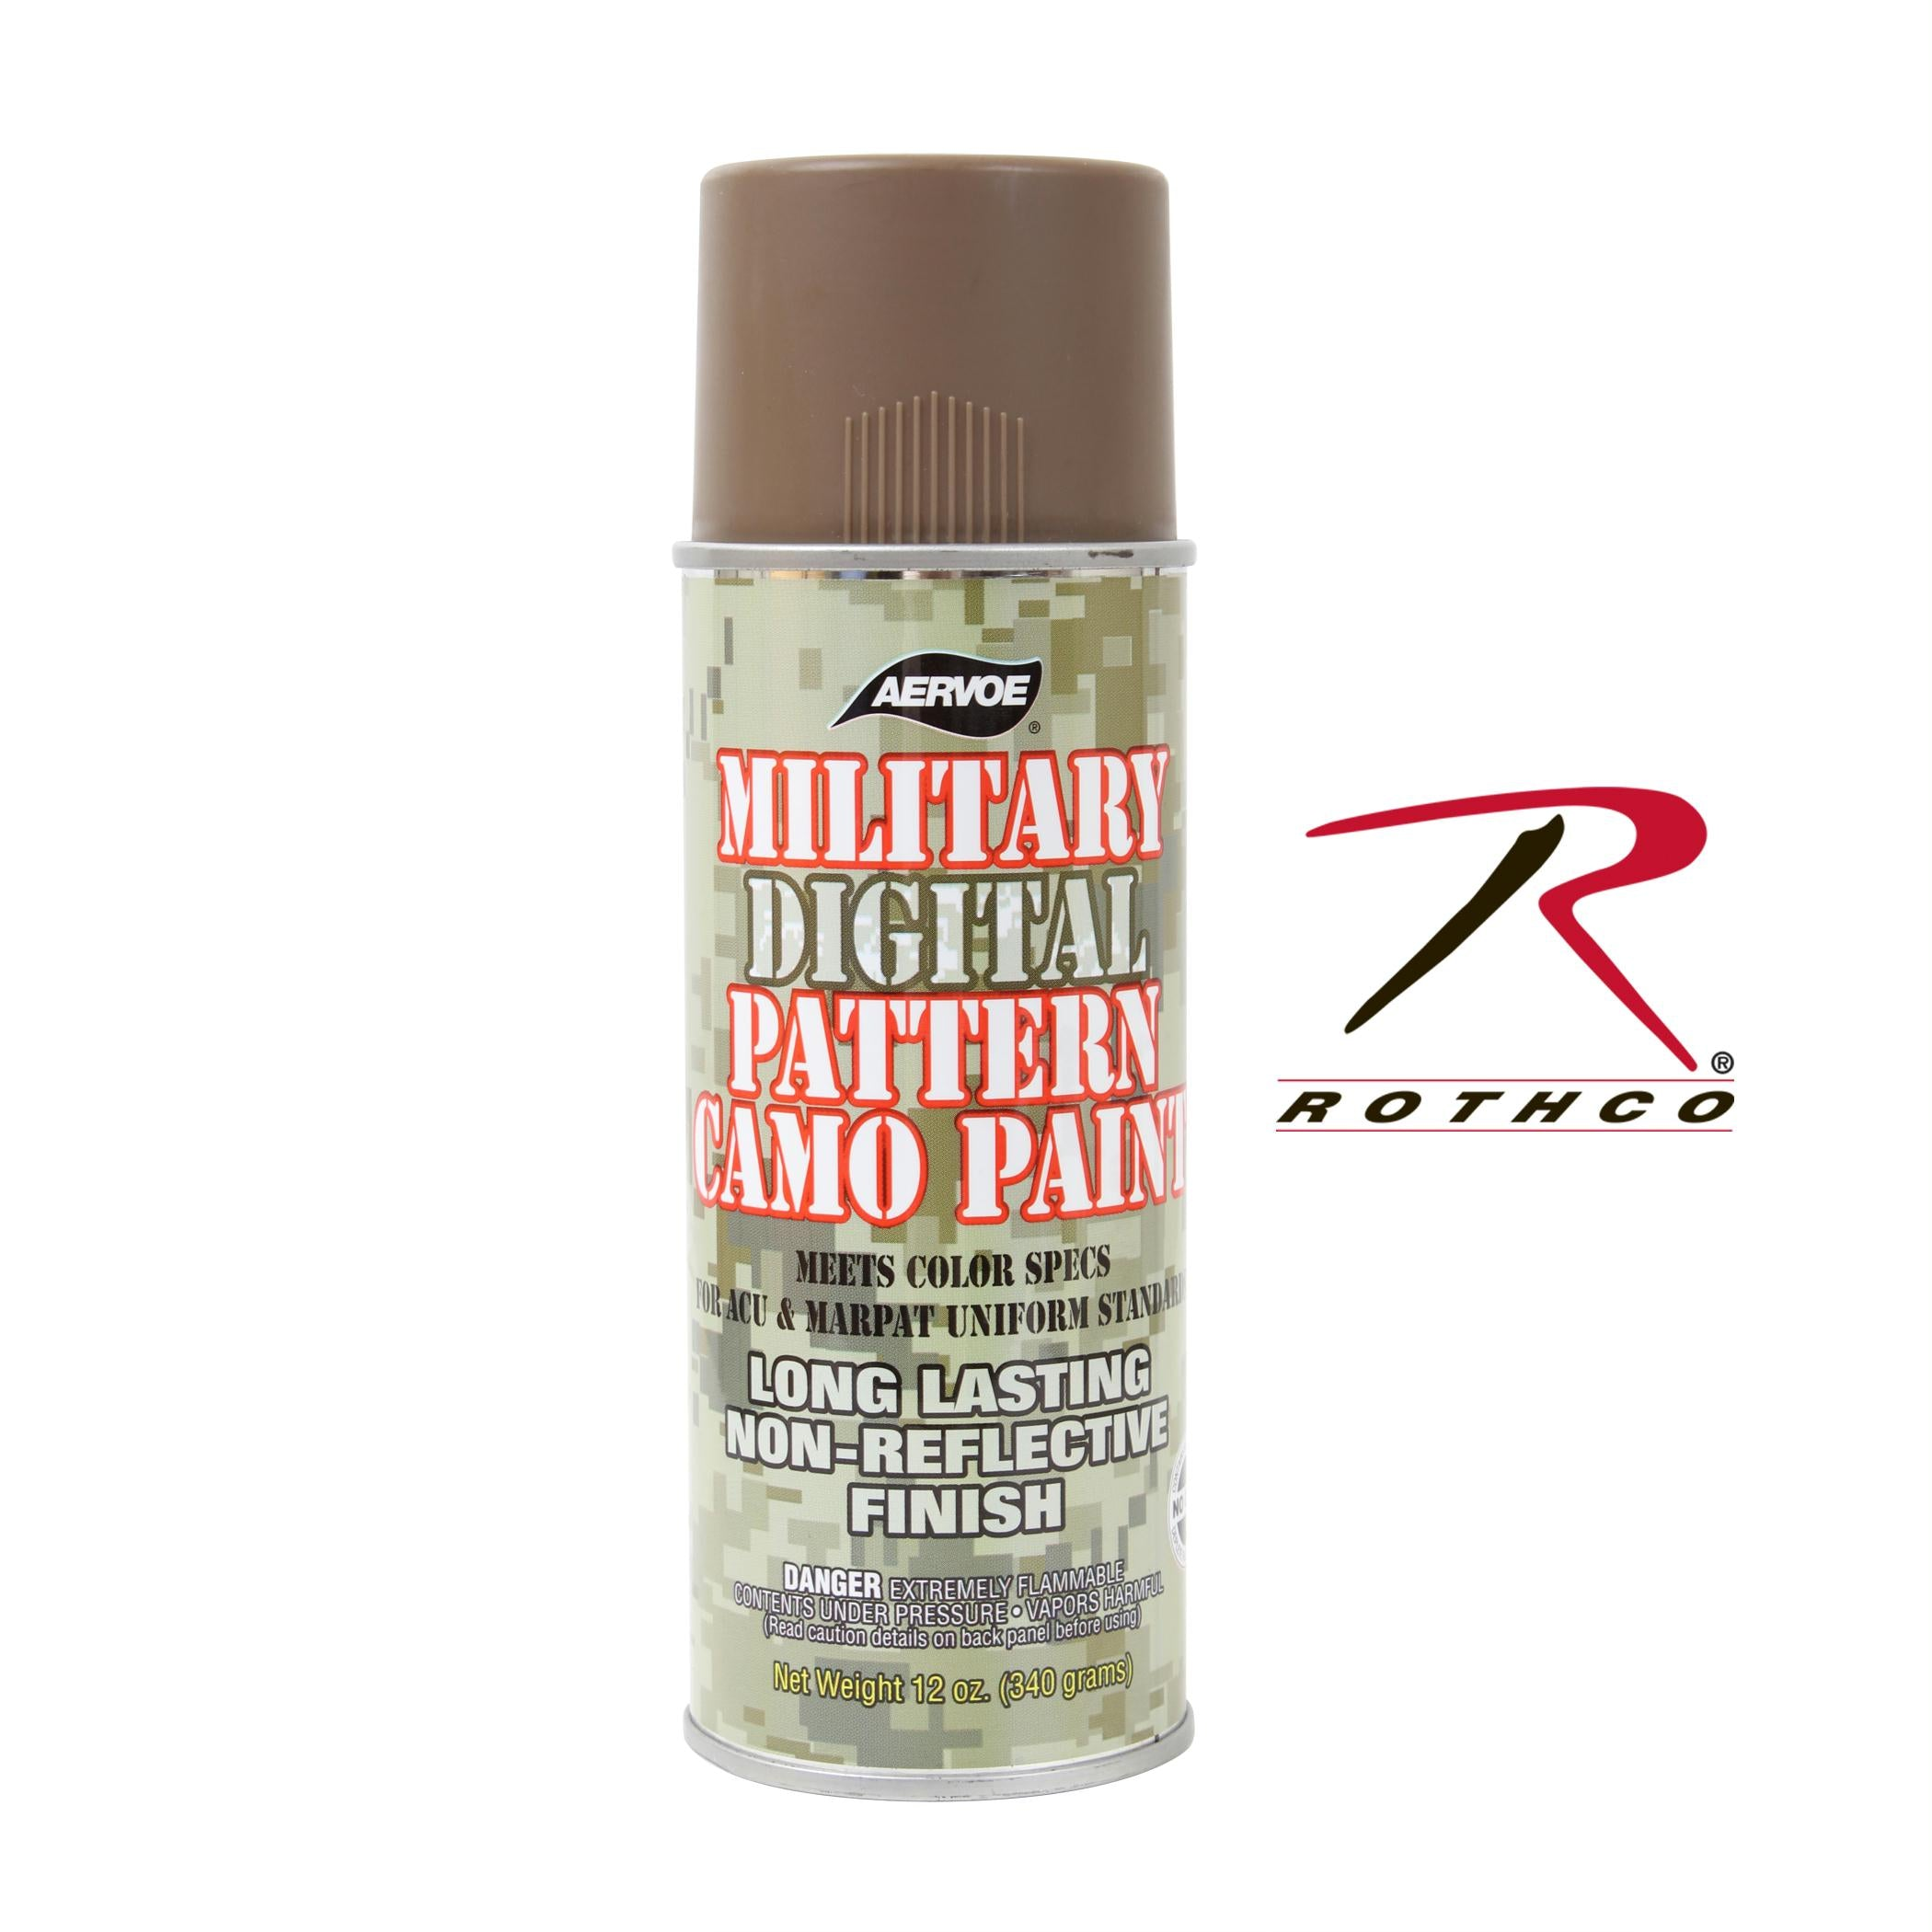 Rothco Camouflage Spray Paint - Coyote Brown